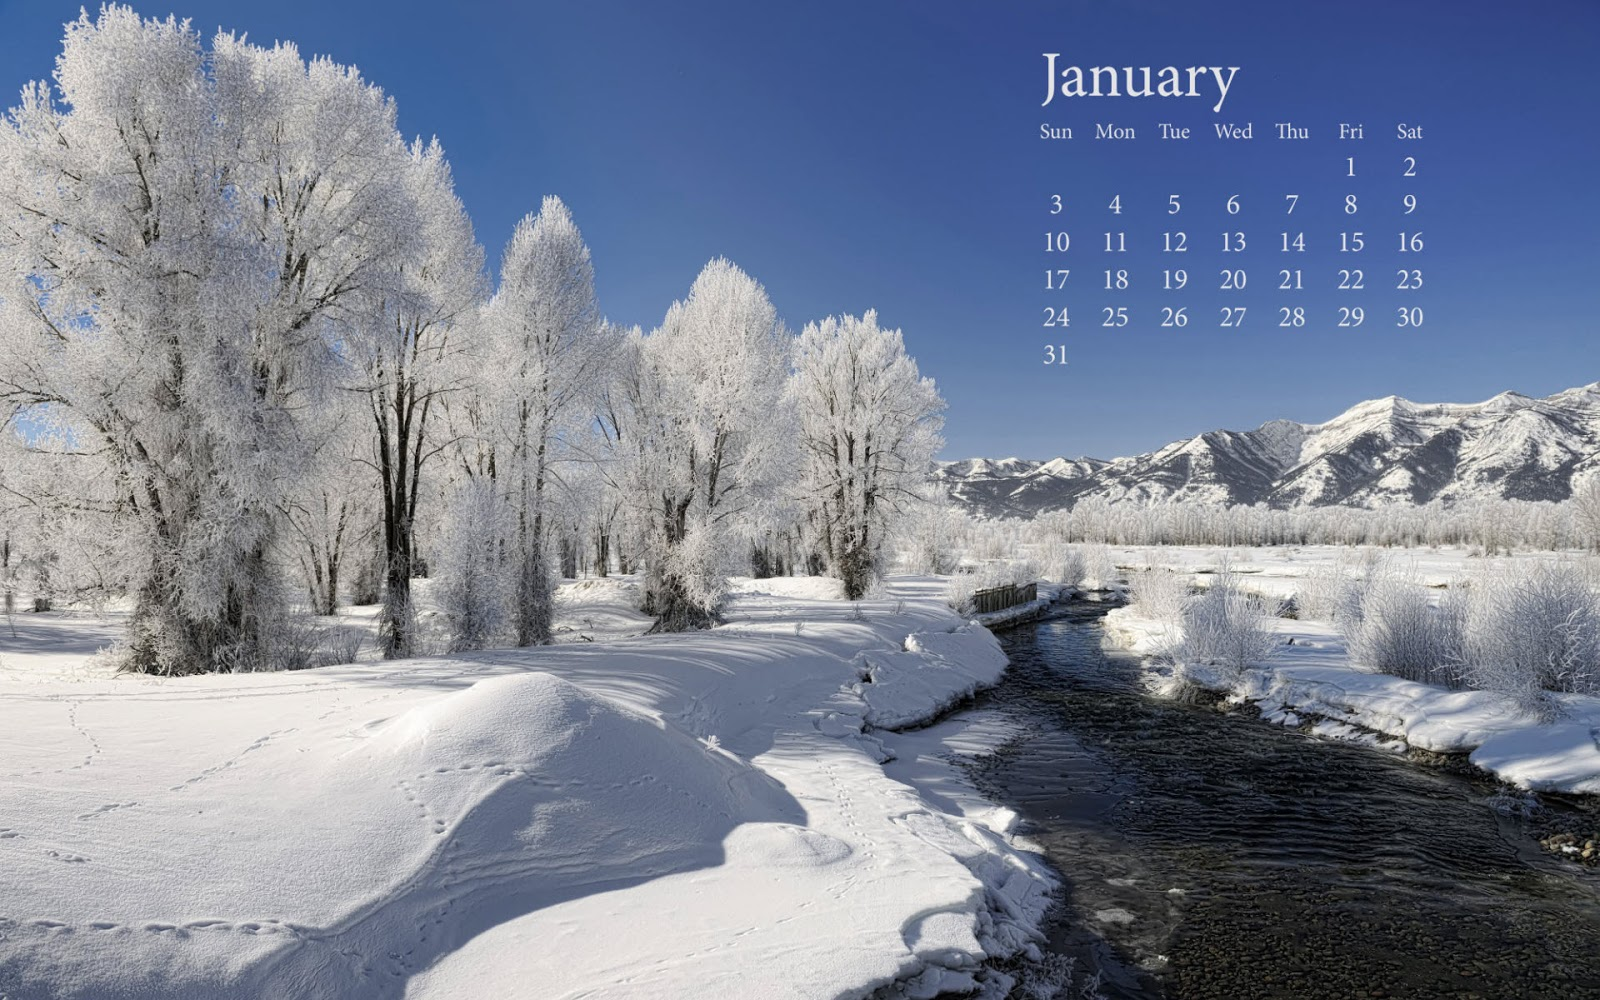 Download Free Desktop Wallpapers: January Wallpapers For